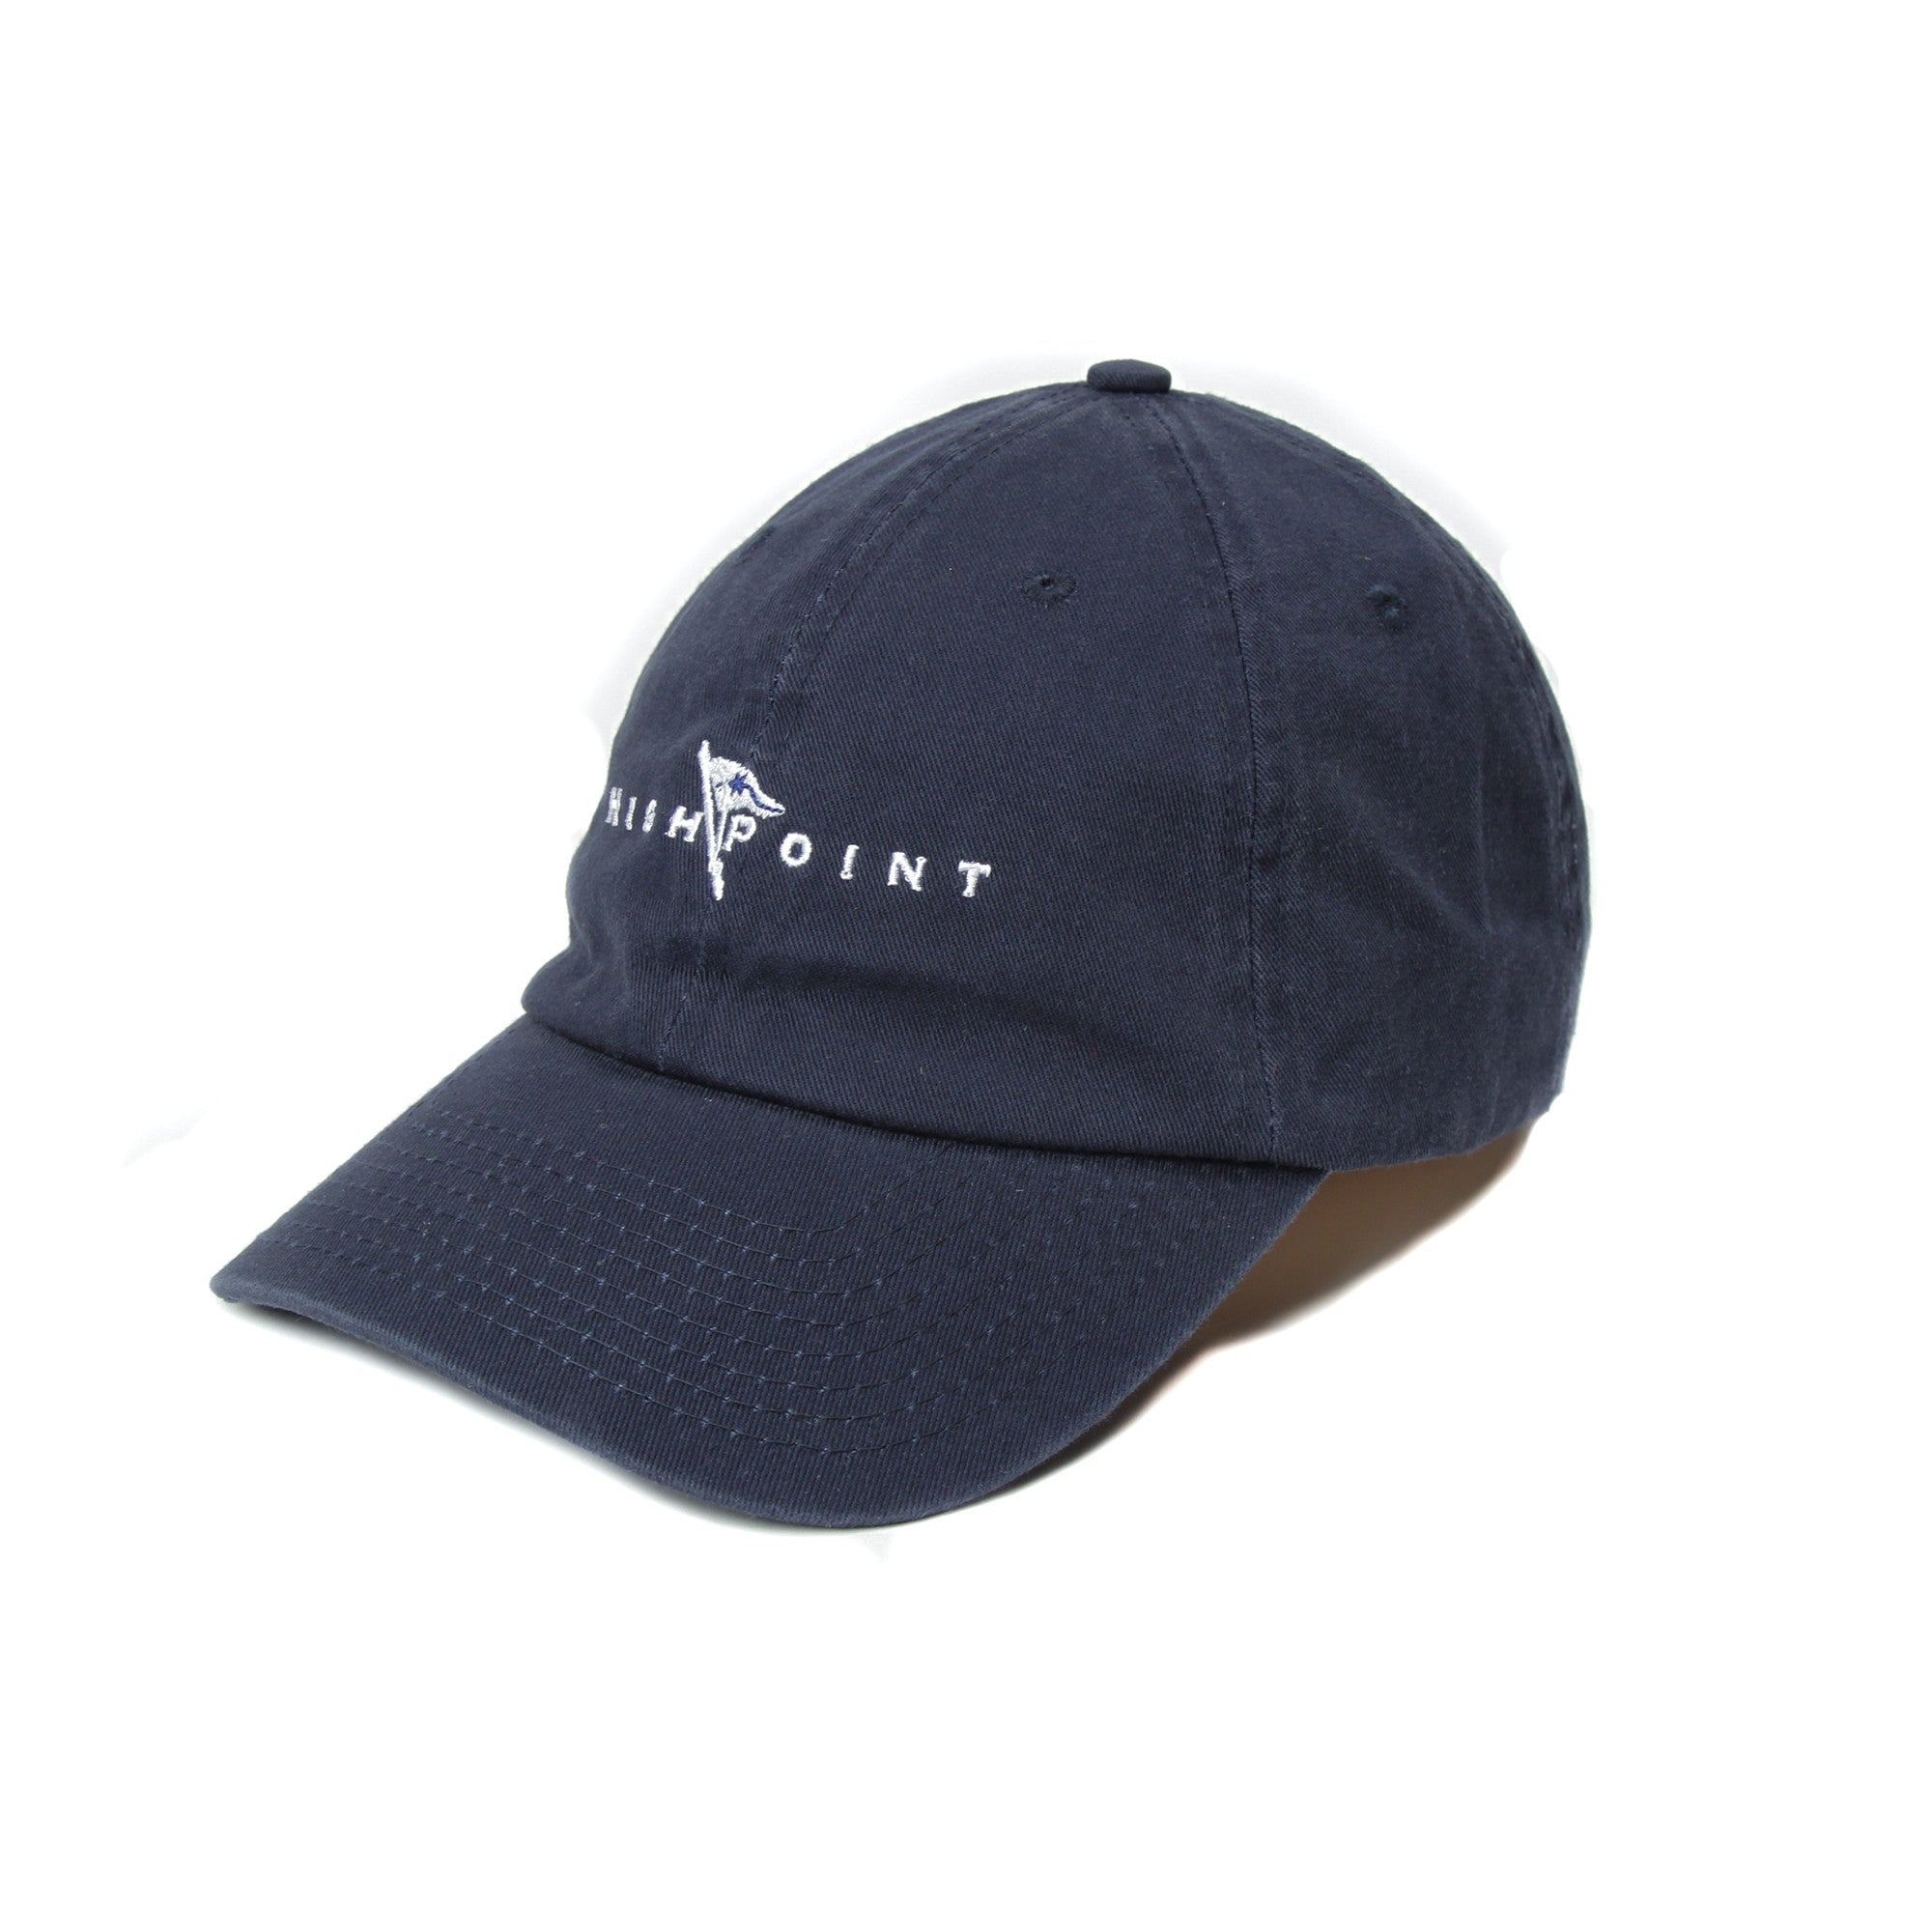 HIGH POINT 6-PANEL